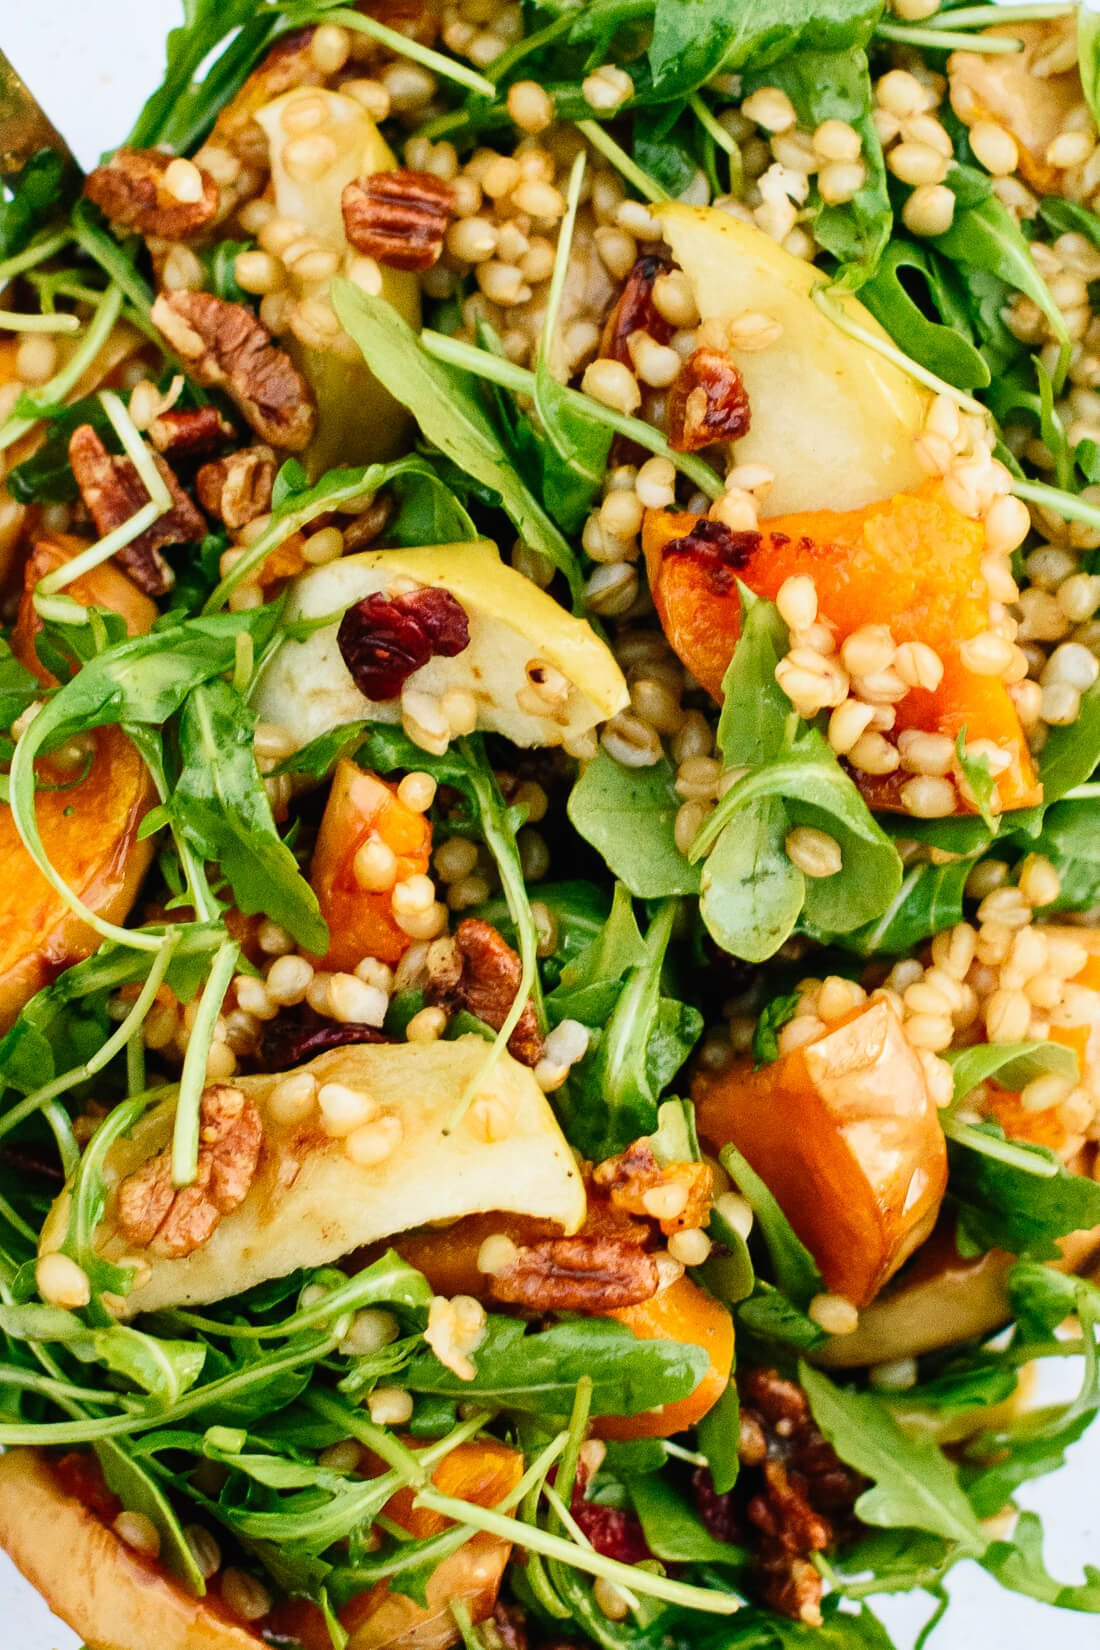 Roasted butternut squash, apple and wheat berry salad recipe